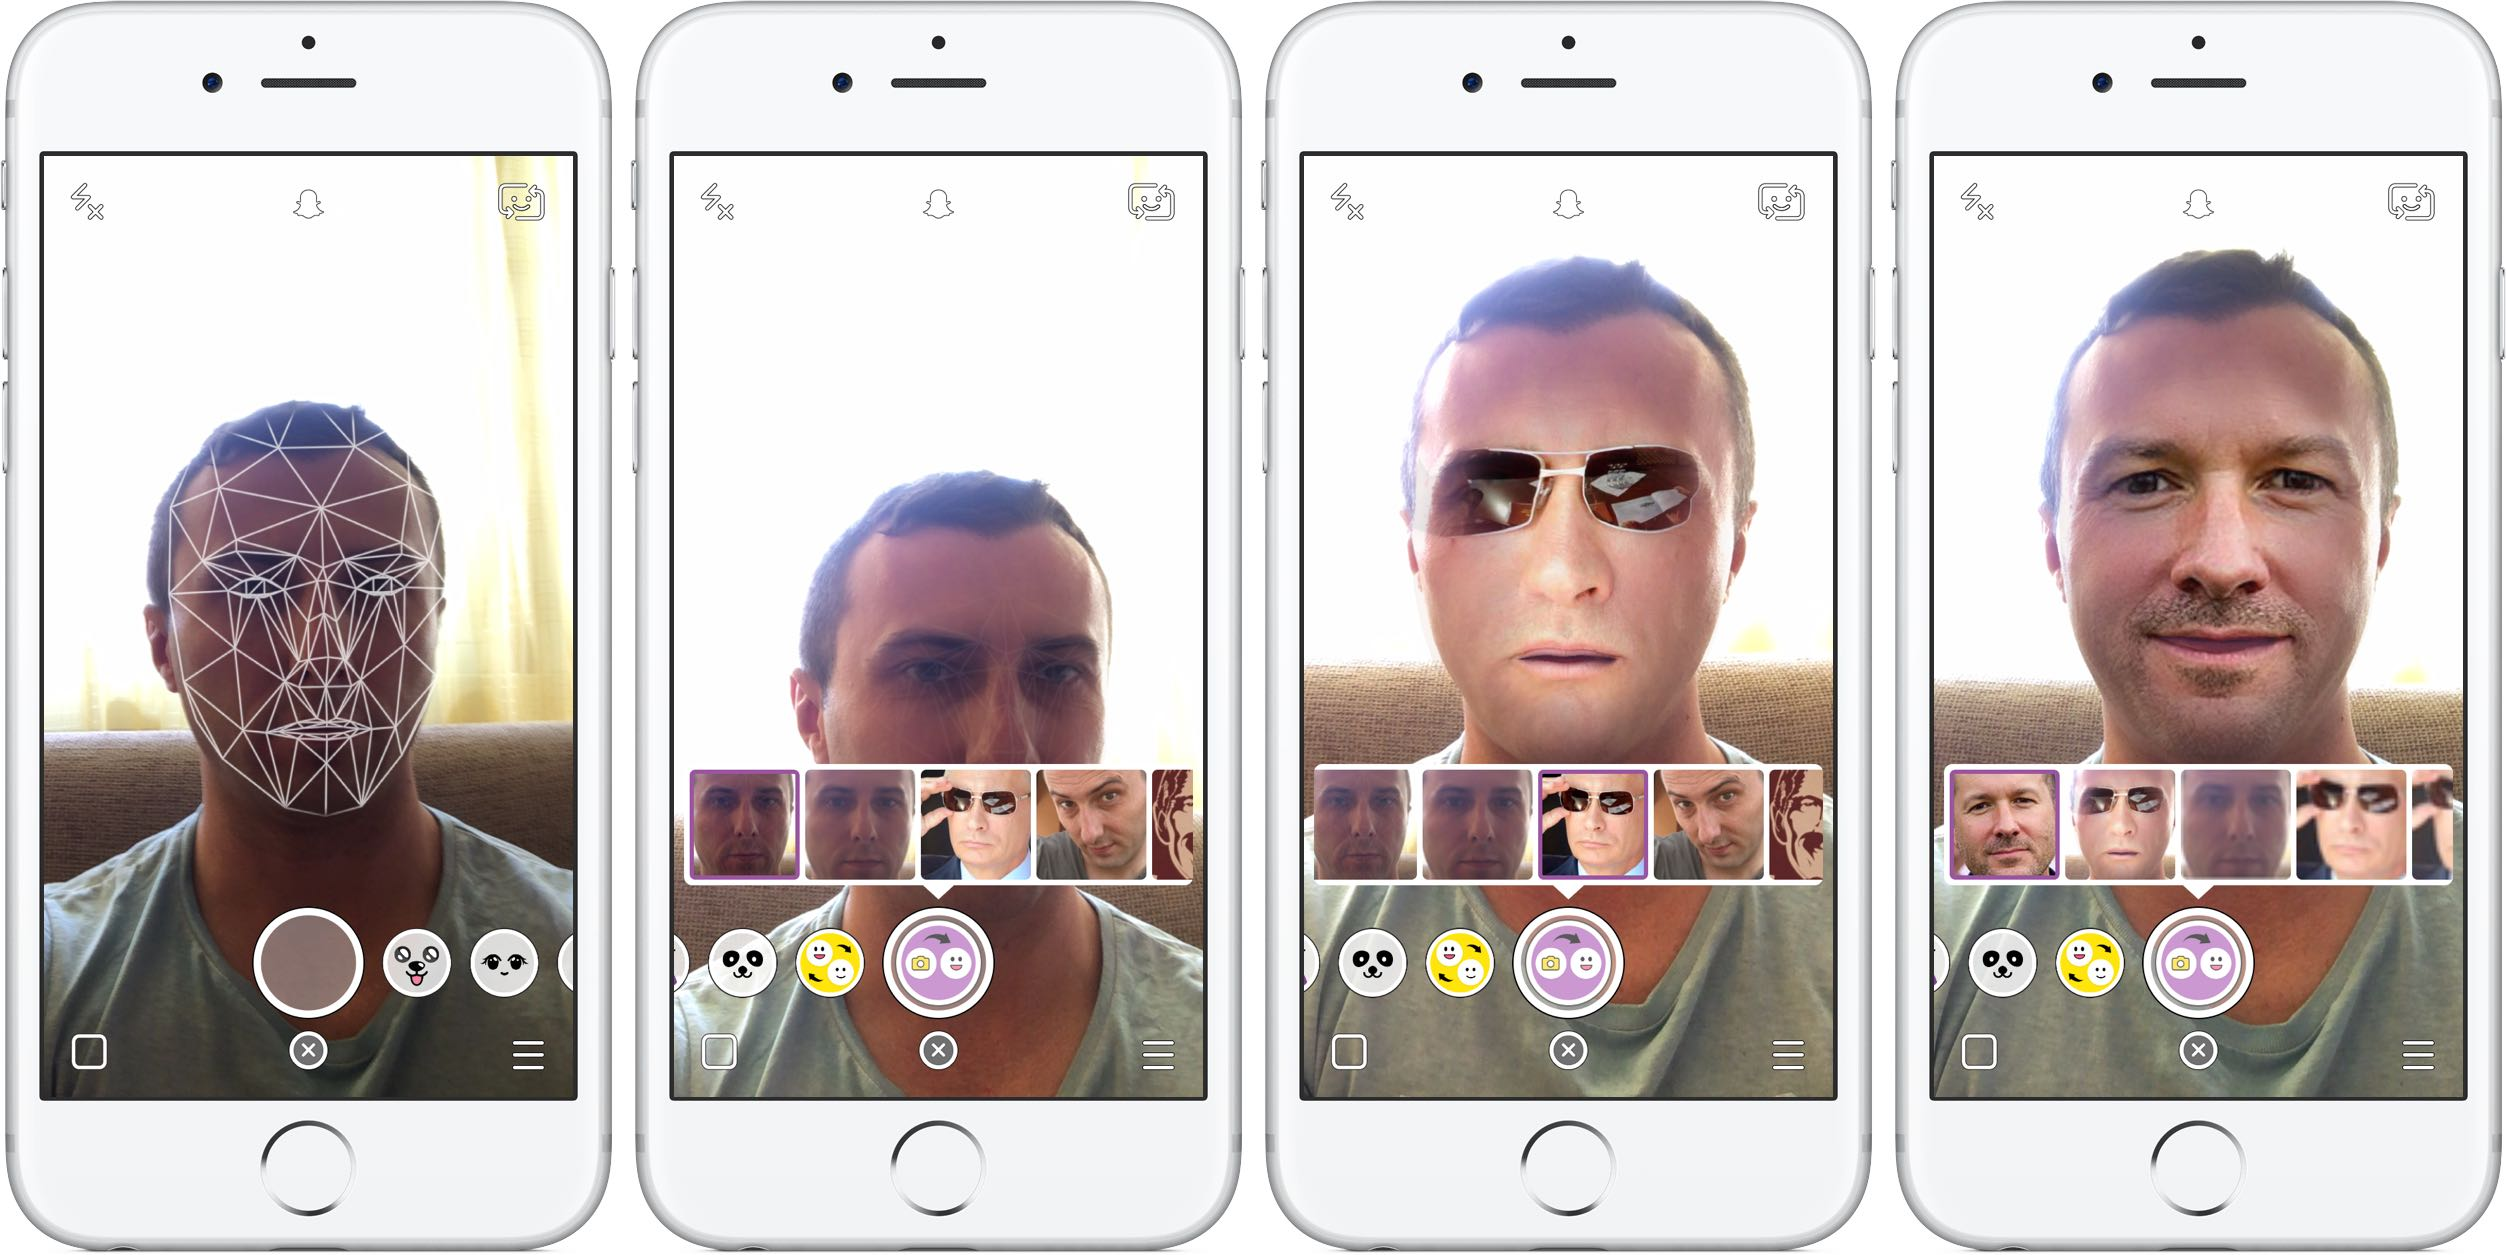 Captura de pantalla 001 de Snapchat Face Swap para iPhone